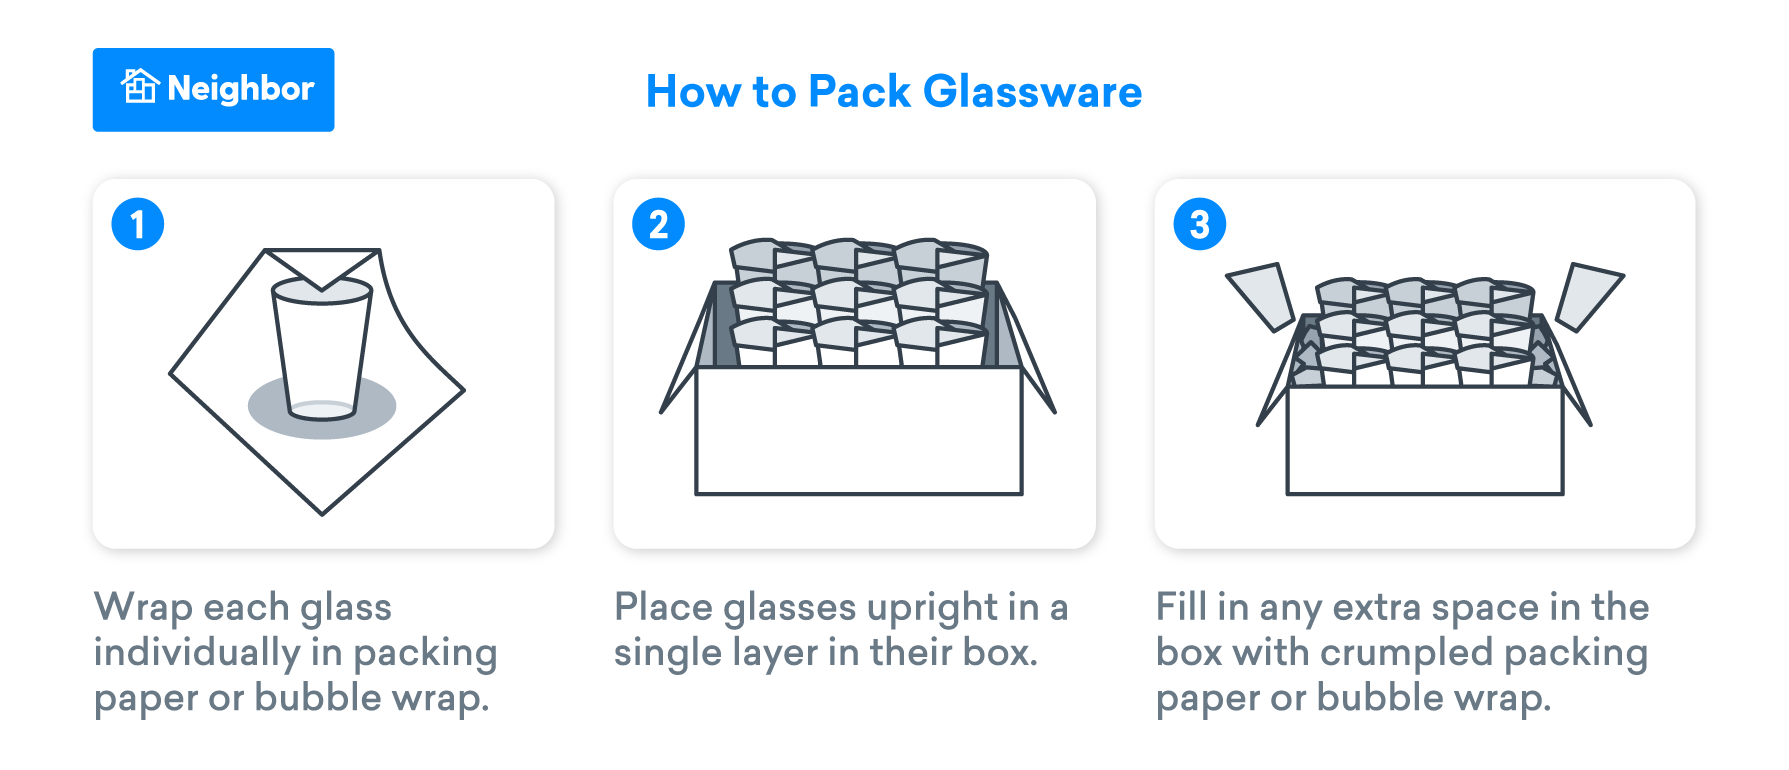 How to pack glassware